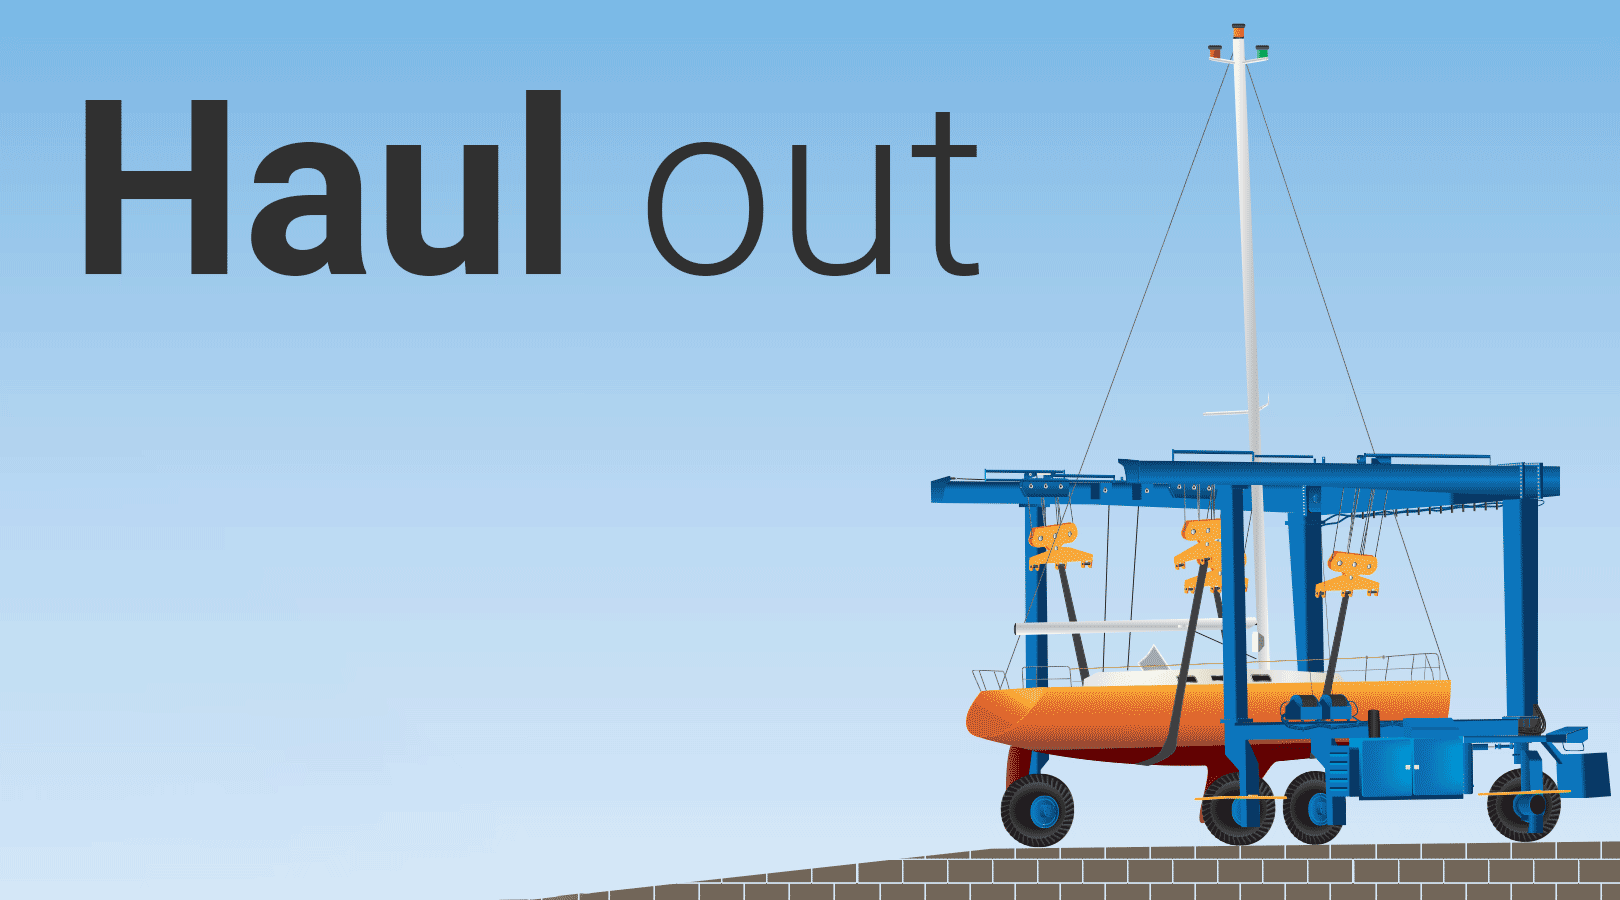 Haul out